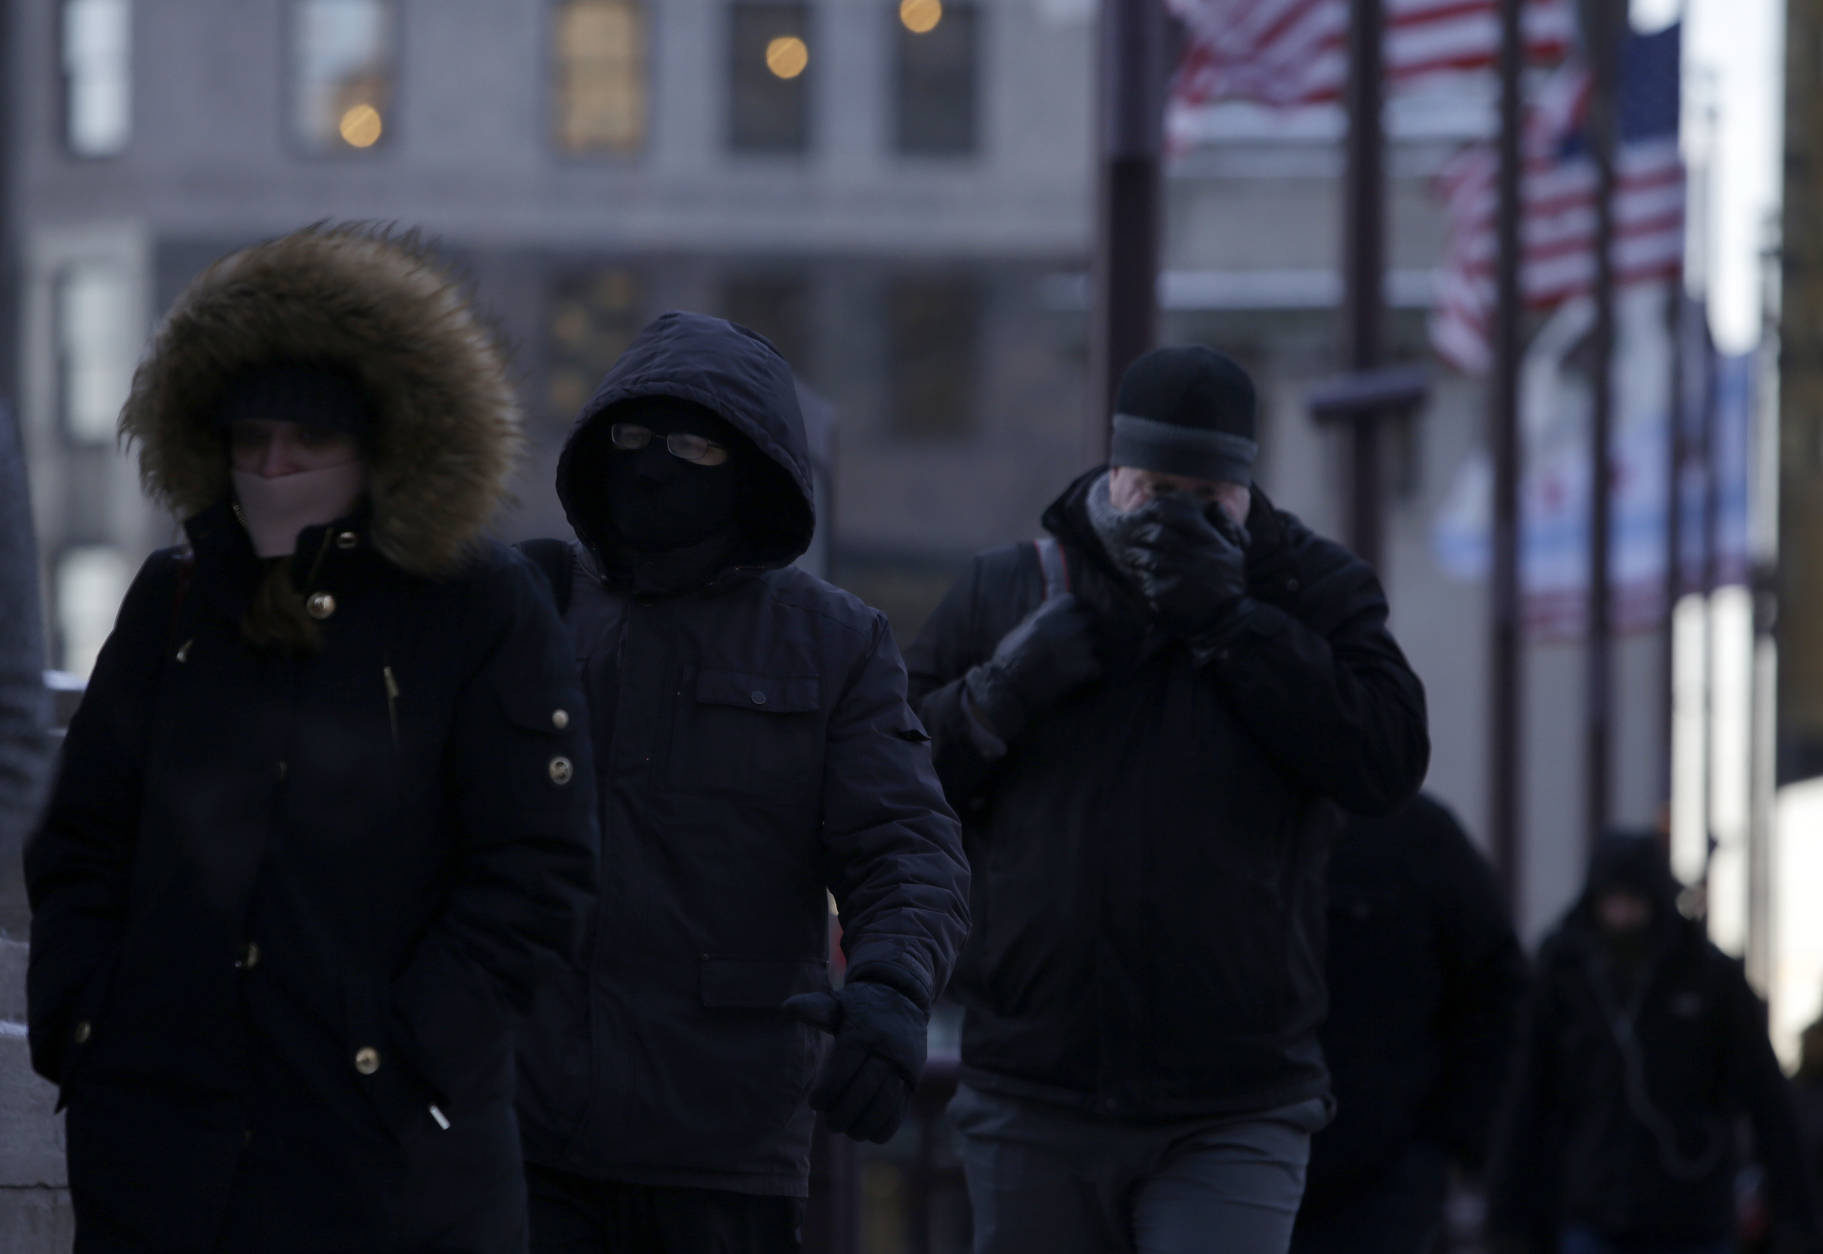 Morning commuters bundle up, Thursday, Dec. 15, 2016, in Chicago. Dangerously cold temperatures gripped the Upper Midwest in advance of a storm that's expected to bring several inches of snow in coming days, while schools and officials in the Northeast braced for their own blast of wintry weather. (AP Photo/Kiichiro Sato)